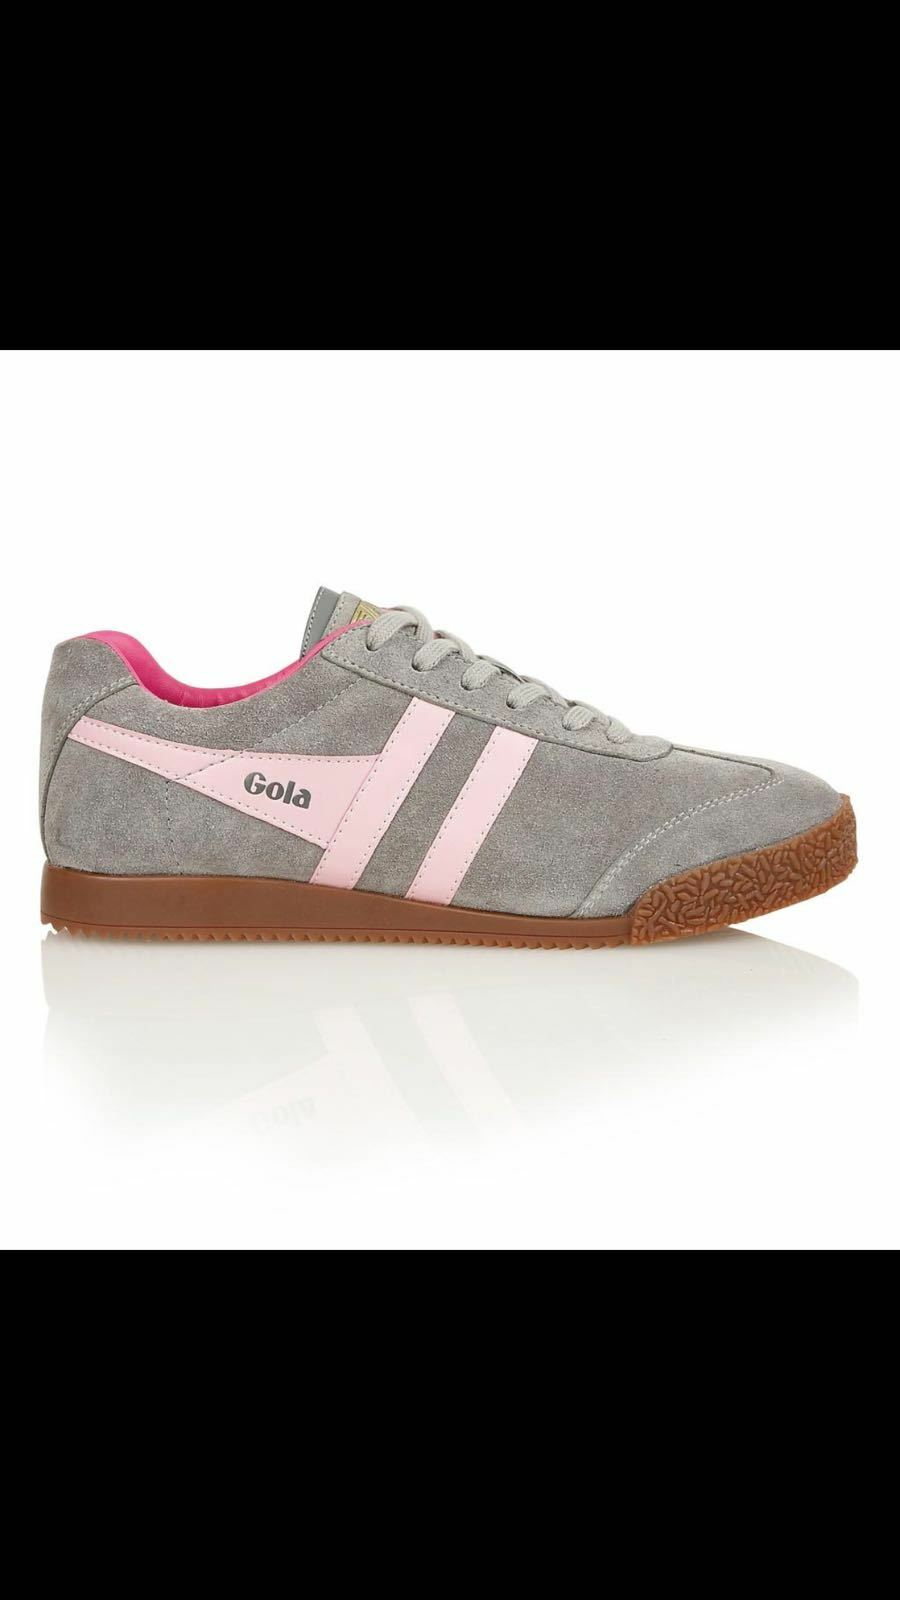 Gola classic women's harrier suede grey pink size 3